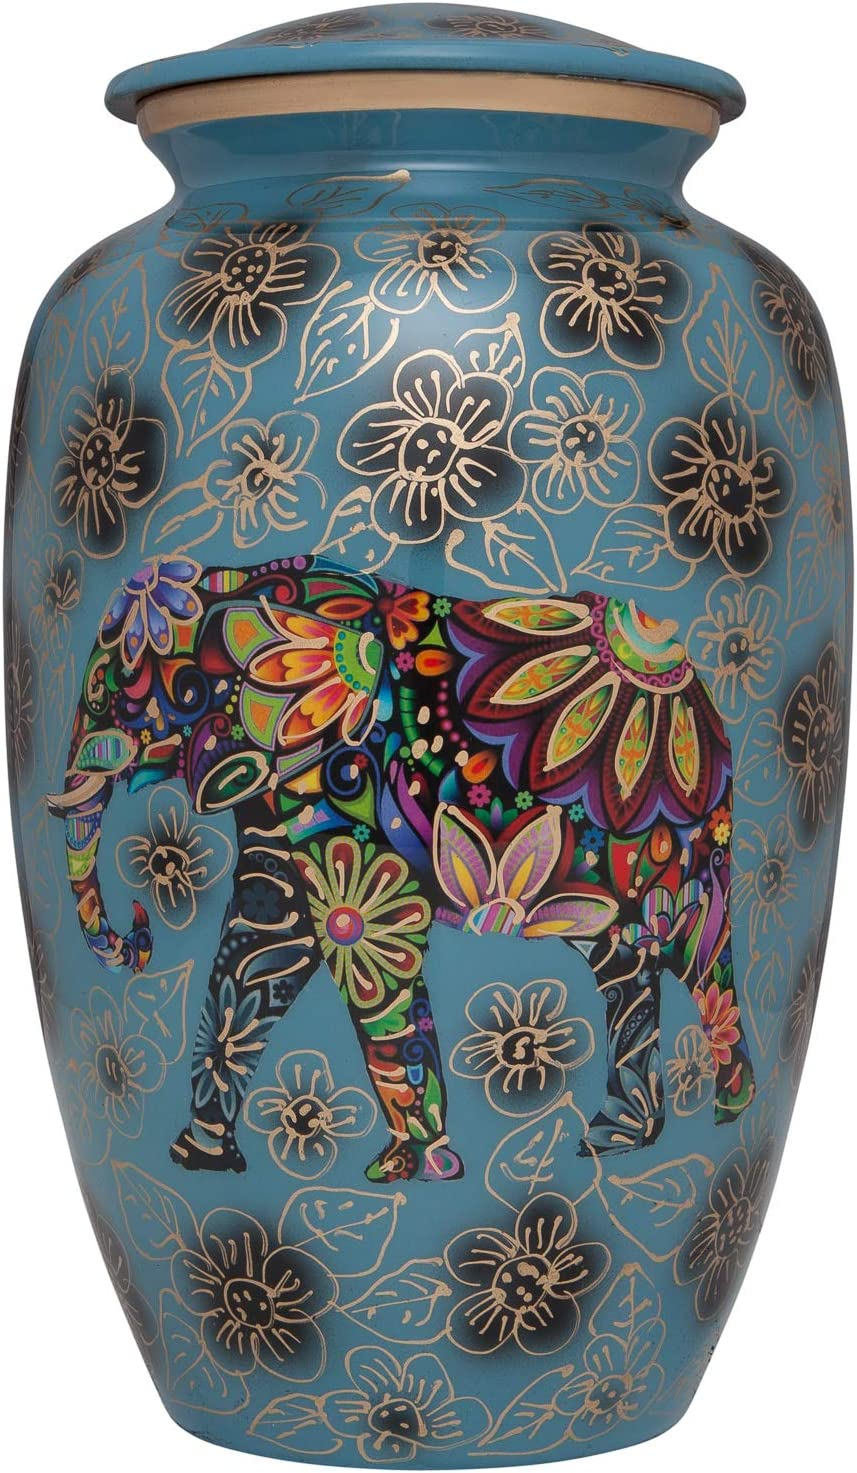 Blue Funeral urn with Elephant - Floral Spiritual Indian Design - Cremation Urn for Human Ashes - Aluminum -Suitable for Cemetery Burial or Niche - Large Size fits Remains of Adults up to 200 lbs